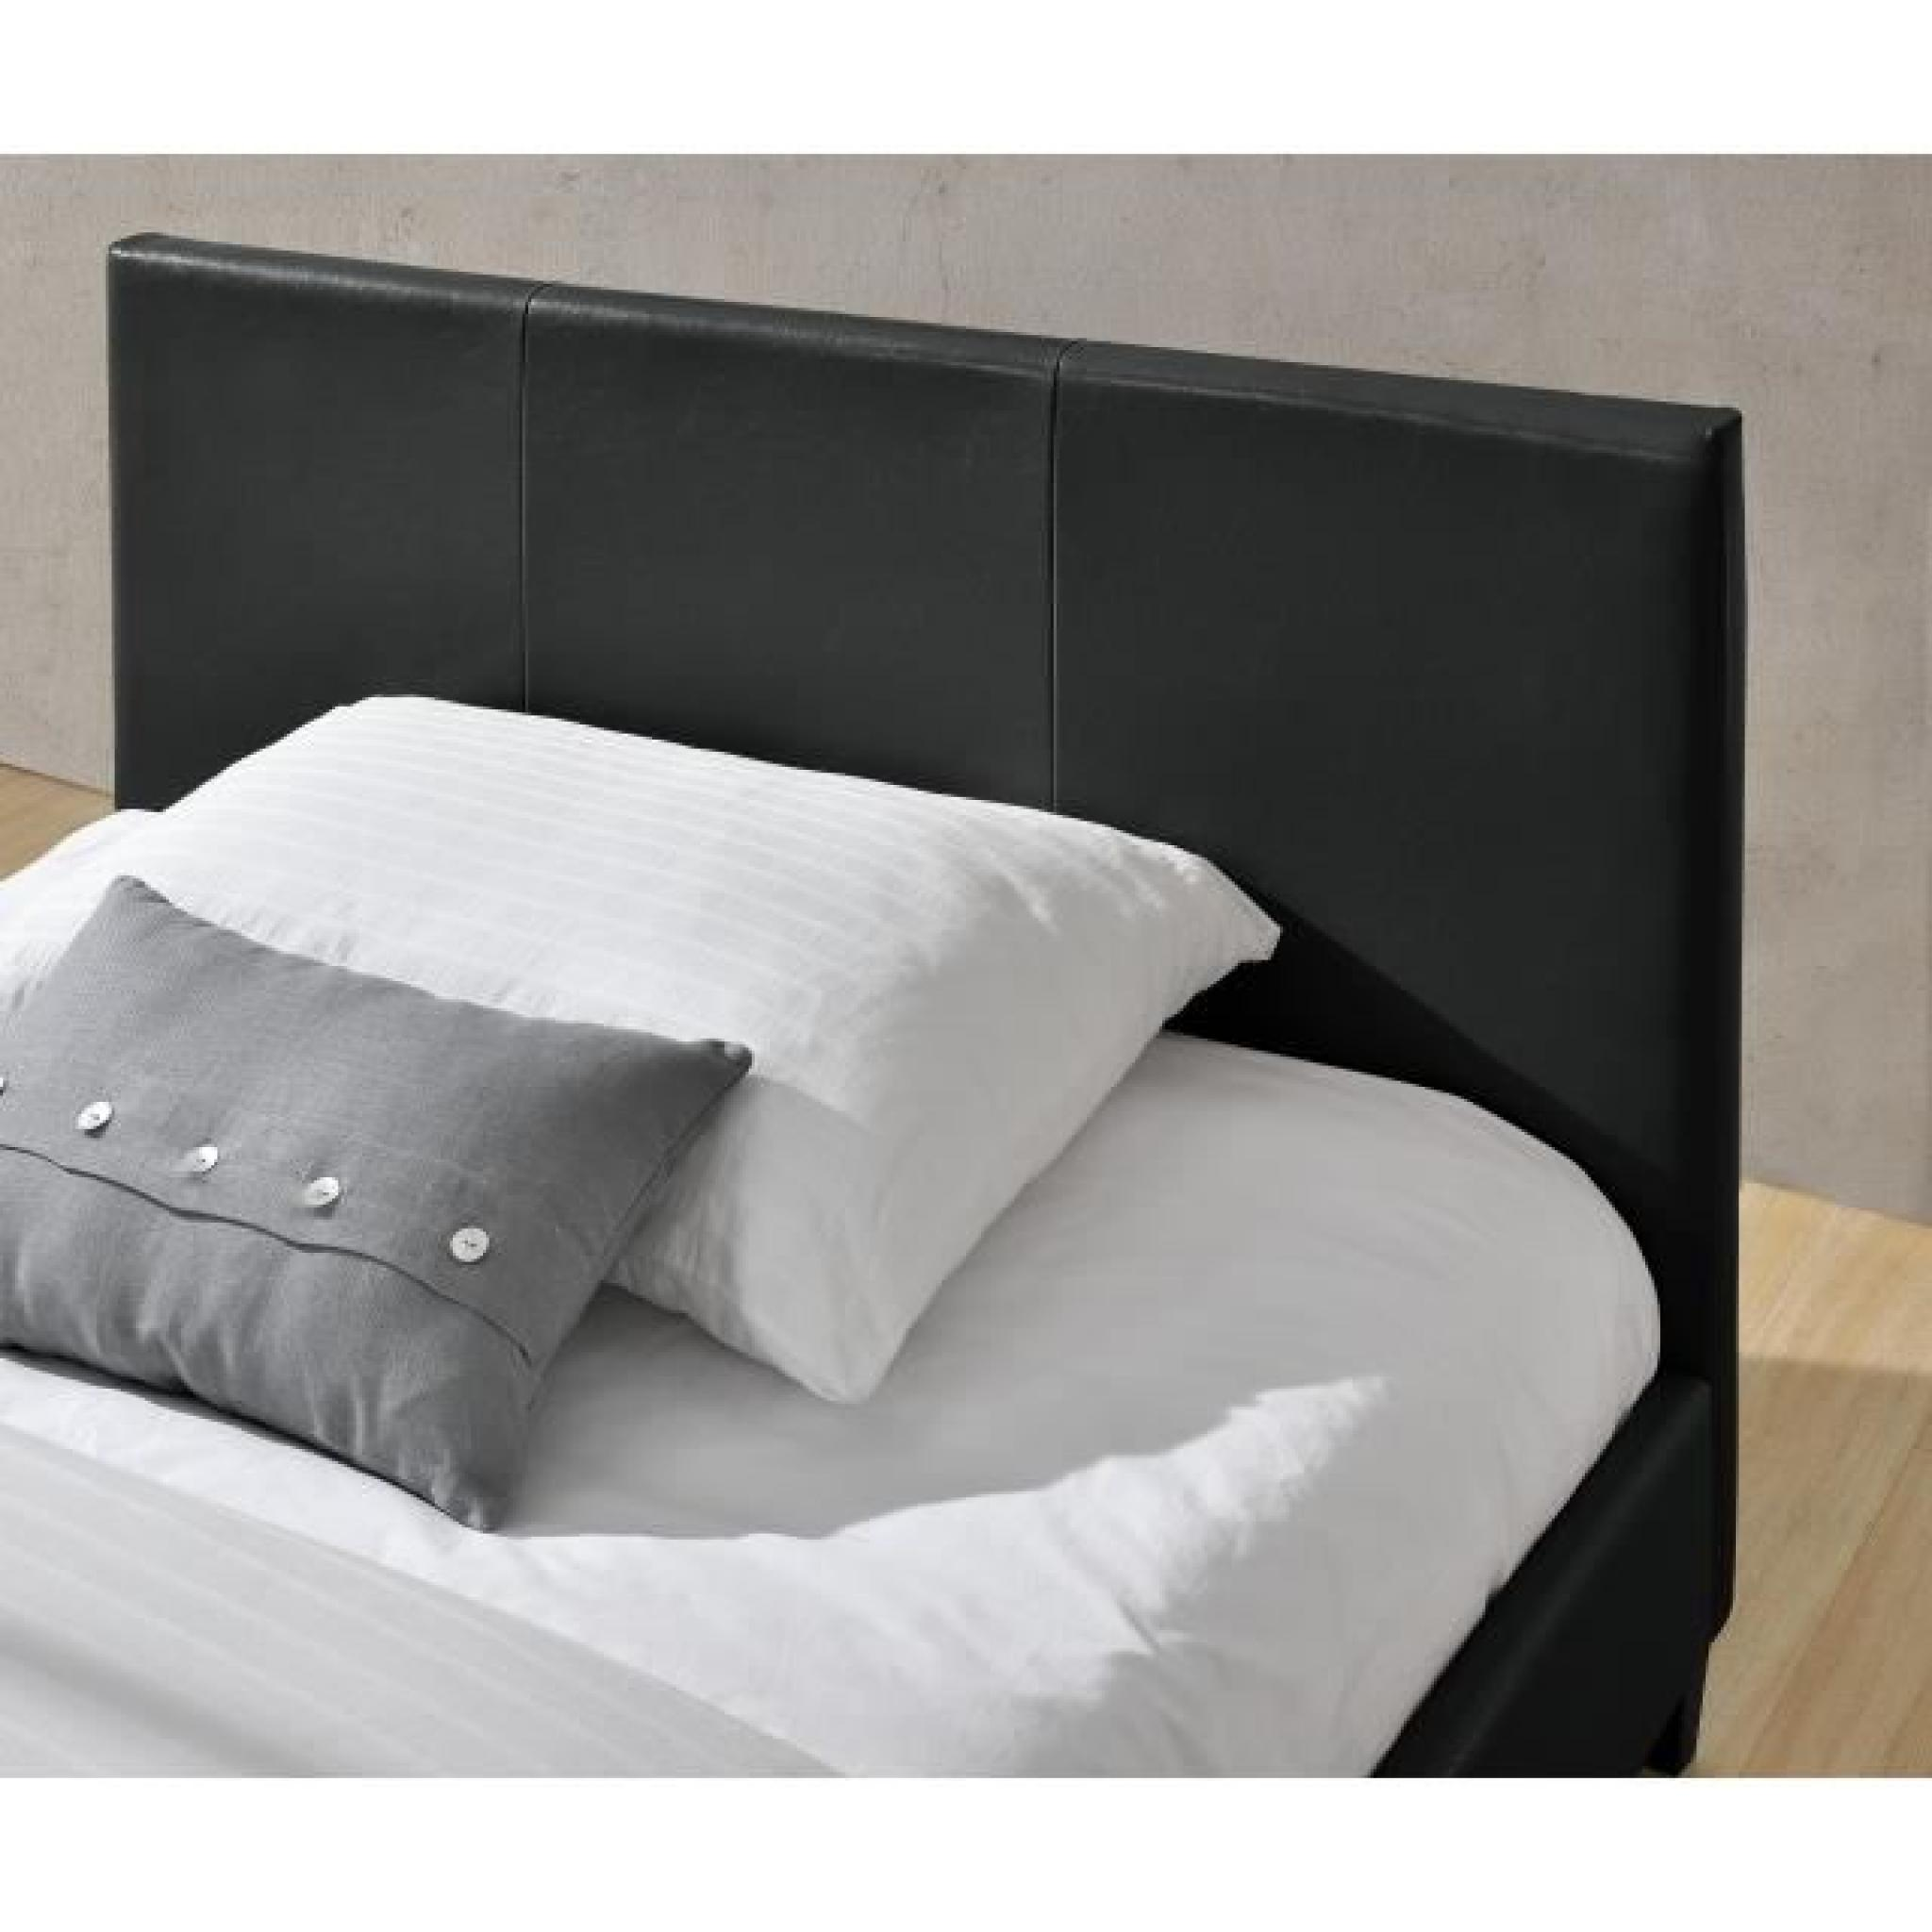 izy lit bycast noir brillant 140x190 achat vente chambre. Black Bedroom Furniture Sets. Home Design Ideas